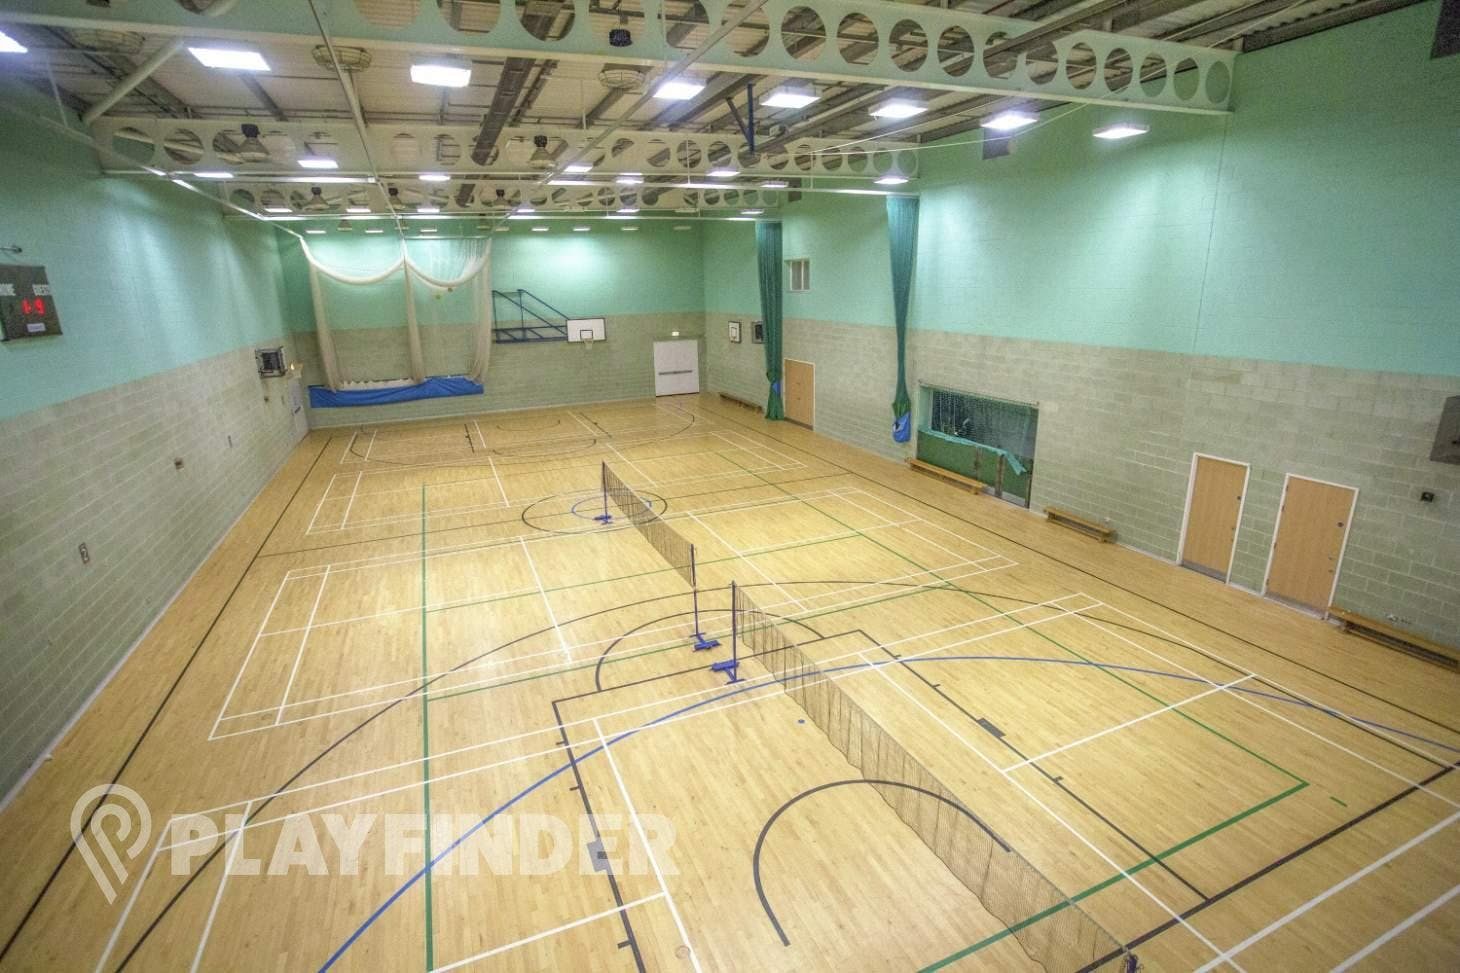 Sidcup Leisure Centre Indoor | Hard badminton court